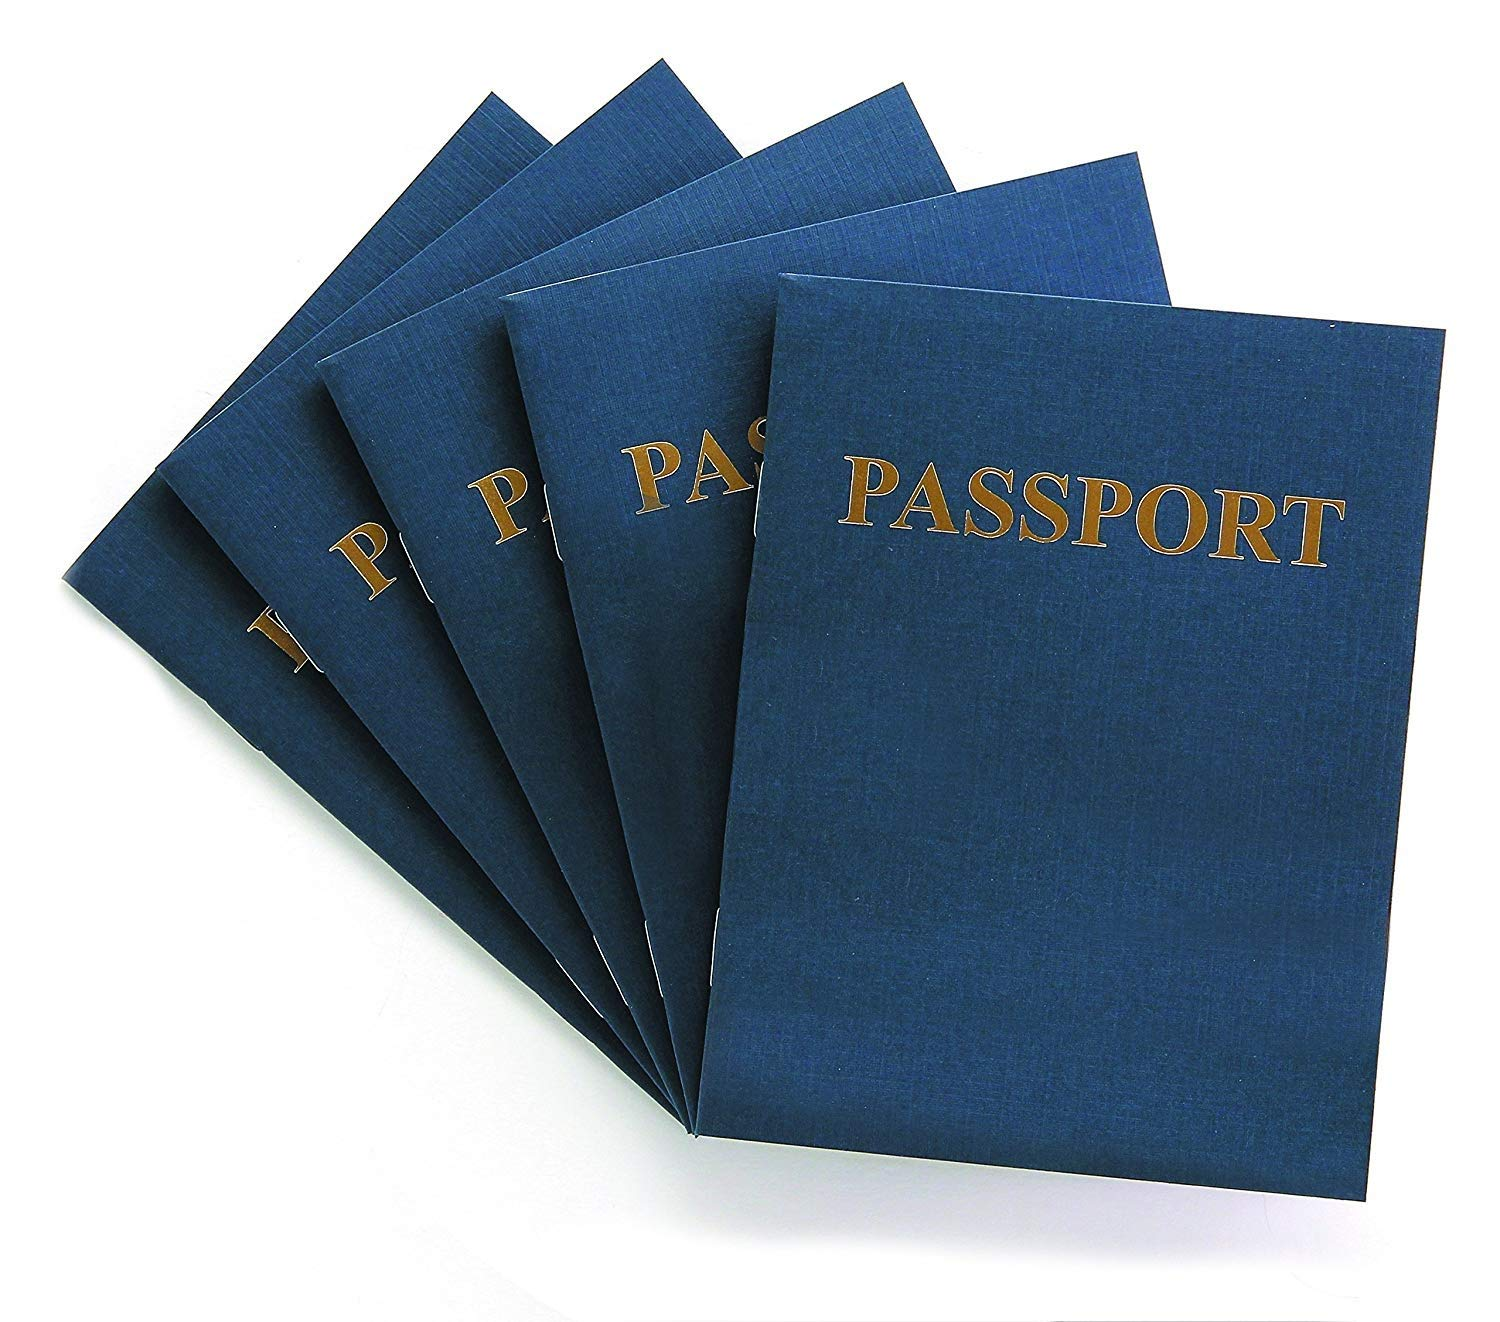 Hygloss Products Blank Passport Book - Fun Pretend Activity for Kids - Great for Classrooms & Parties - Imaginary Travel - Little Travelers Pocket Journal - 24 Blank Pages - 4 ¼'' X 5 ½'' - Pack of 24 Books